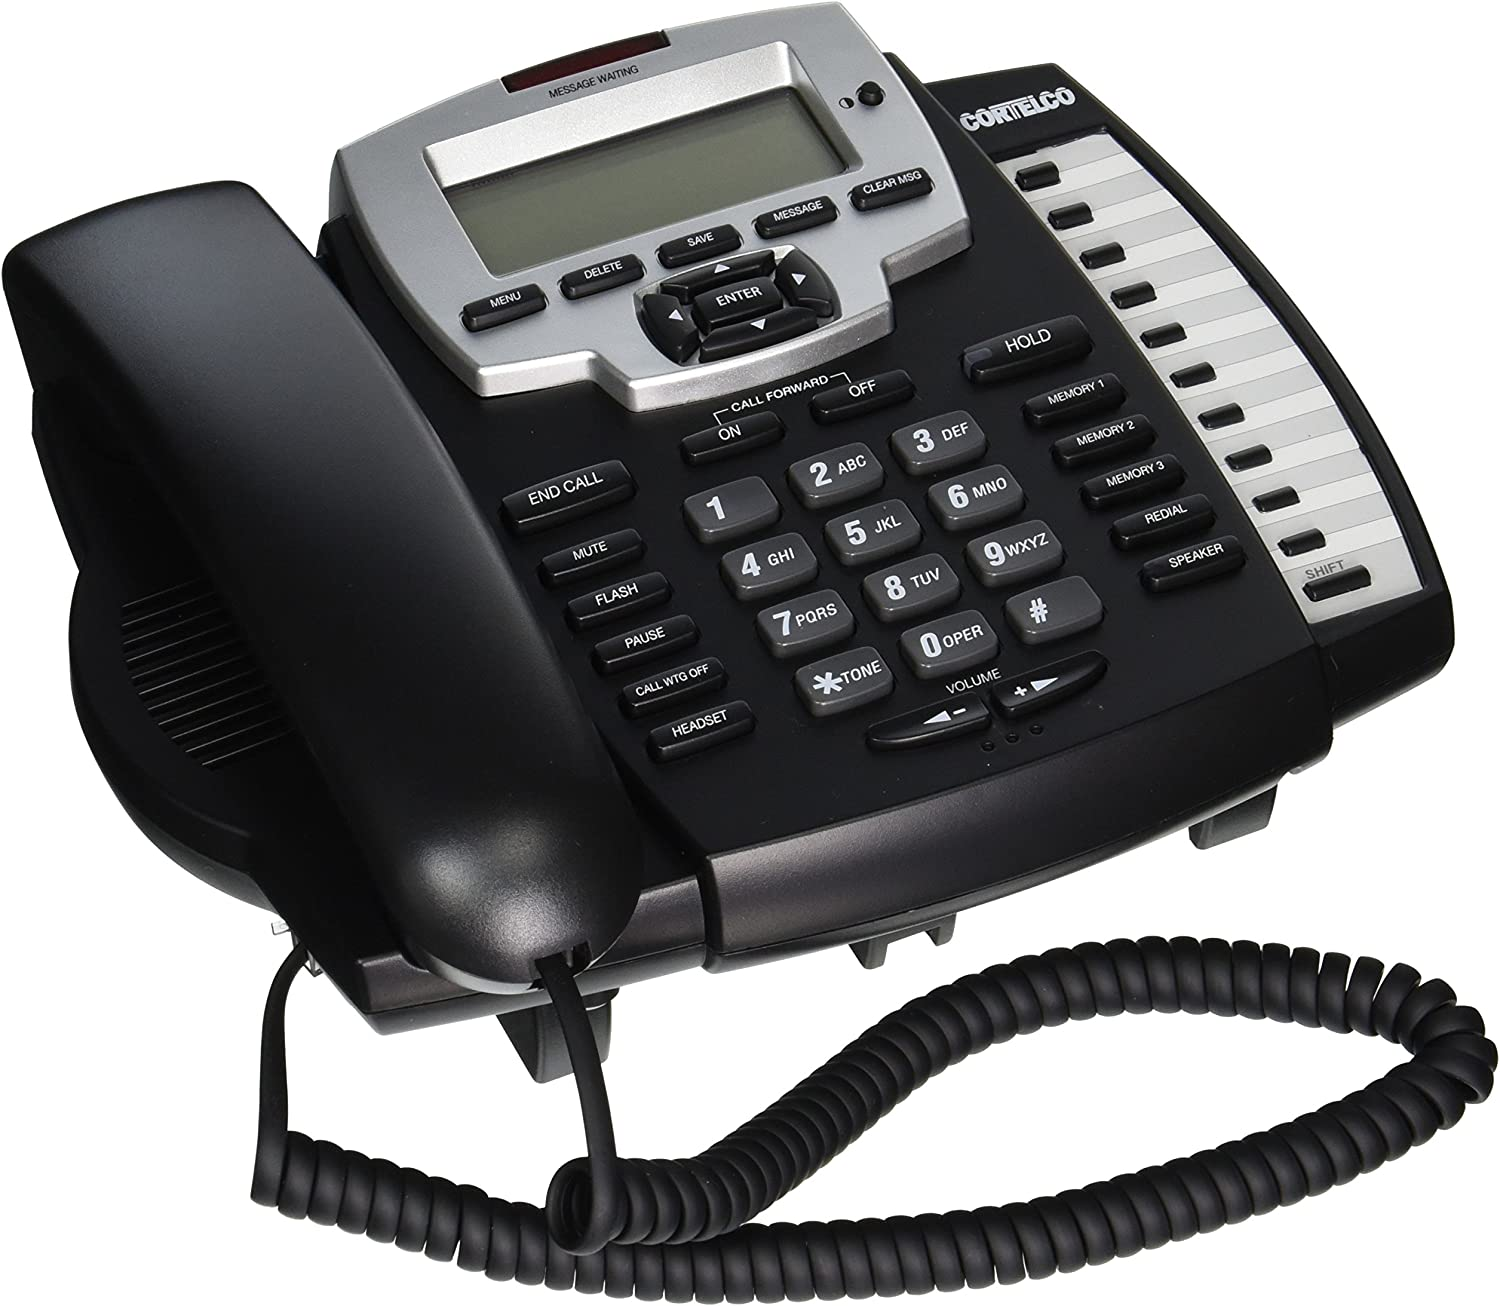 Cortelco Model ITT-9125 Caller ID Corded Single Line Multi-feature Telephone